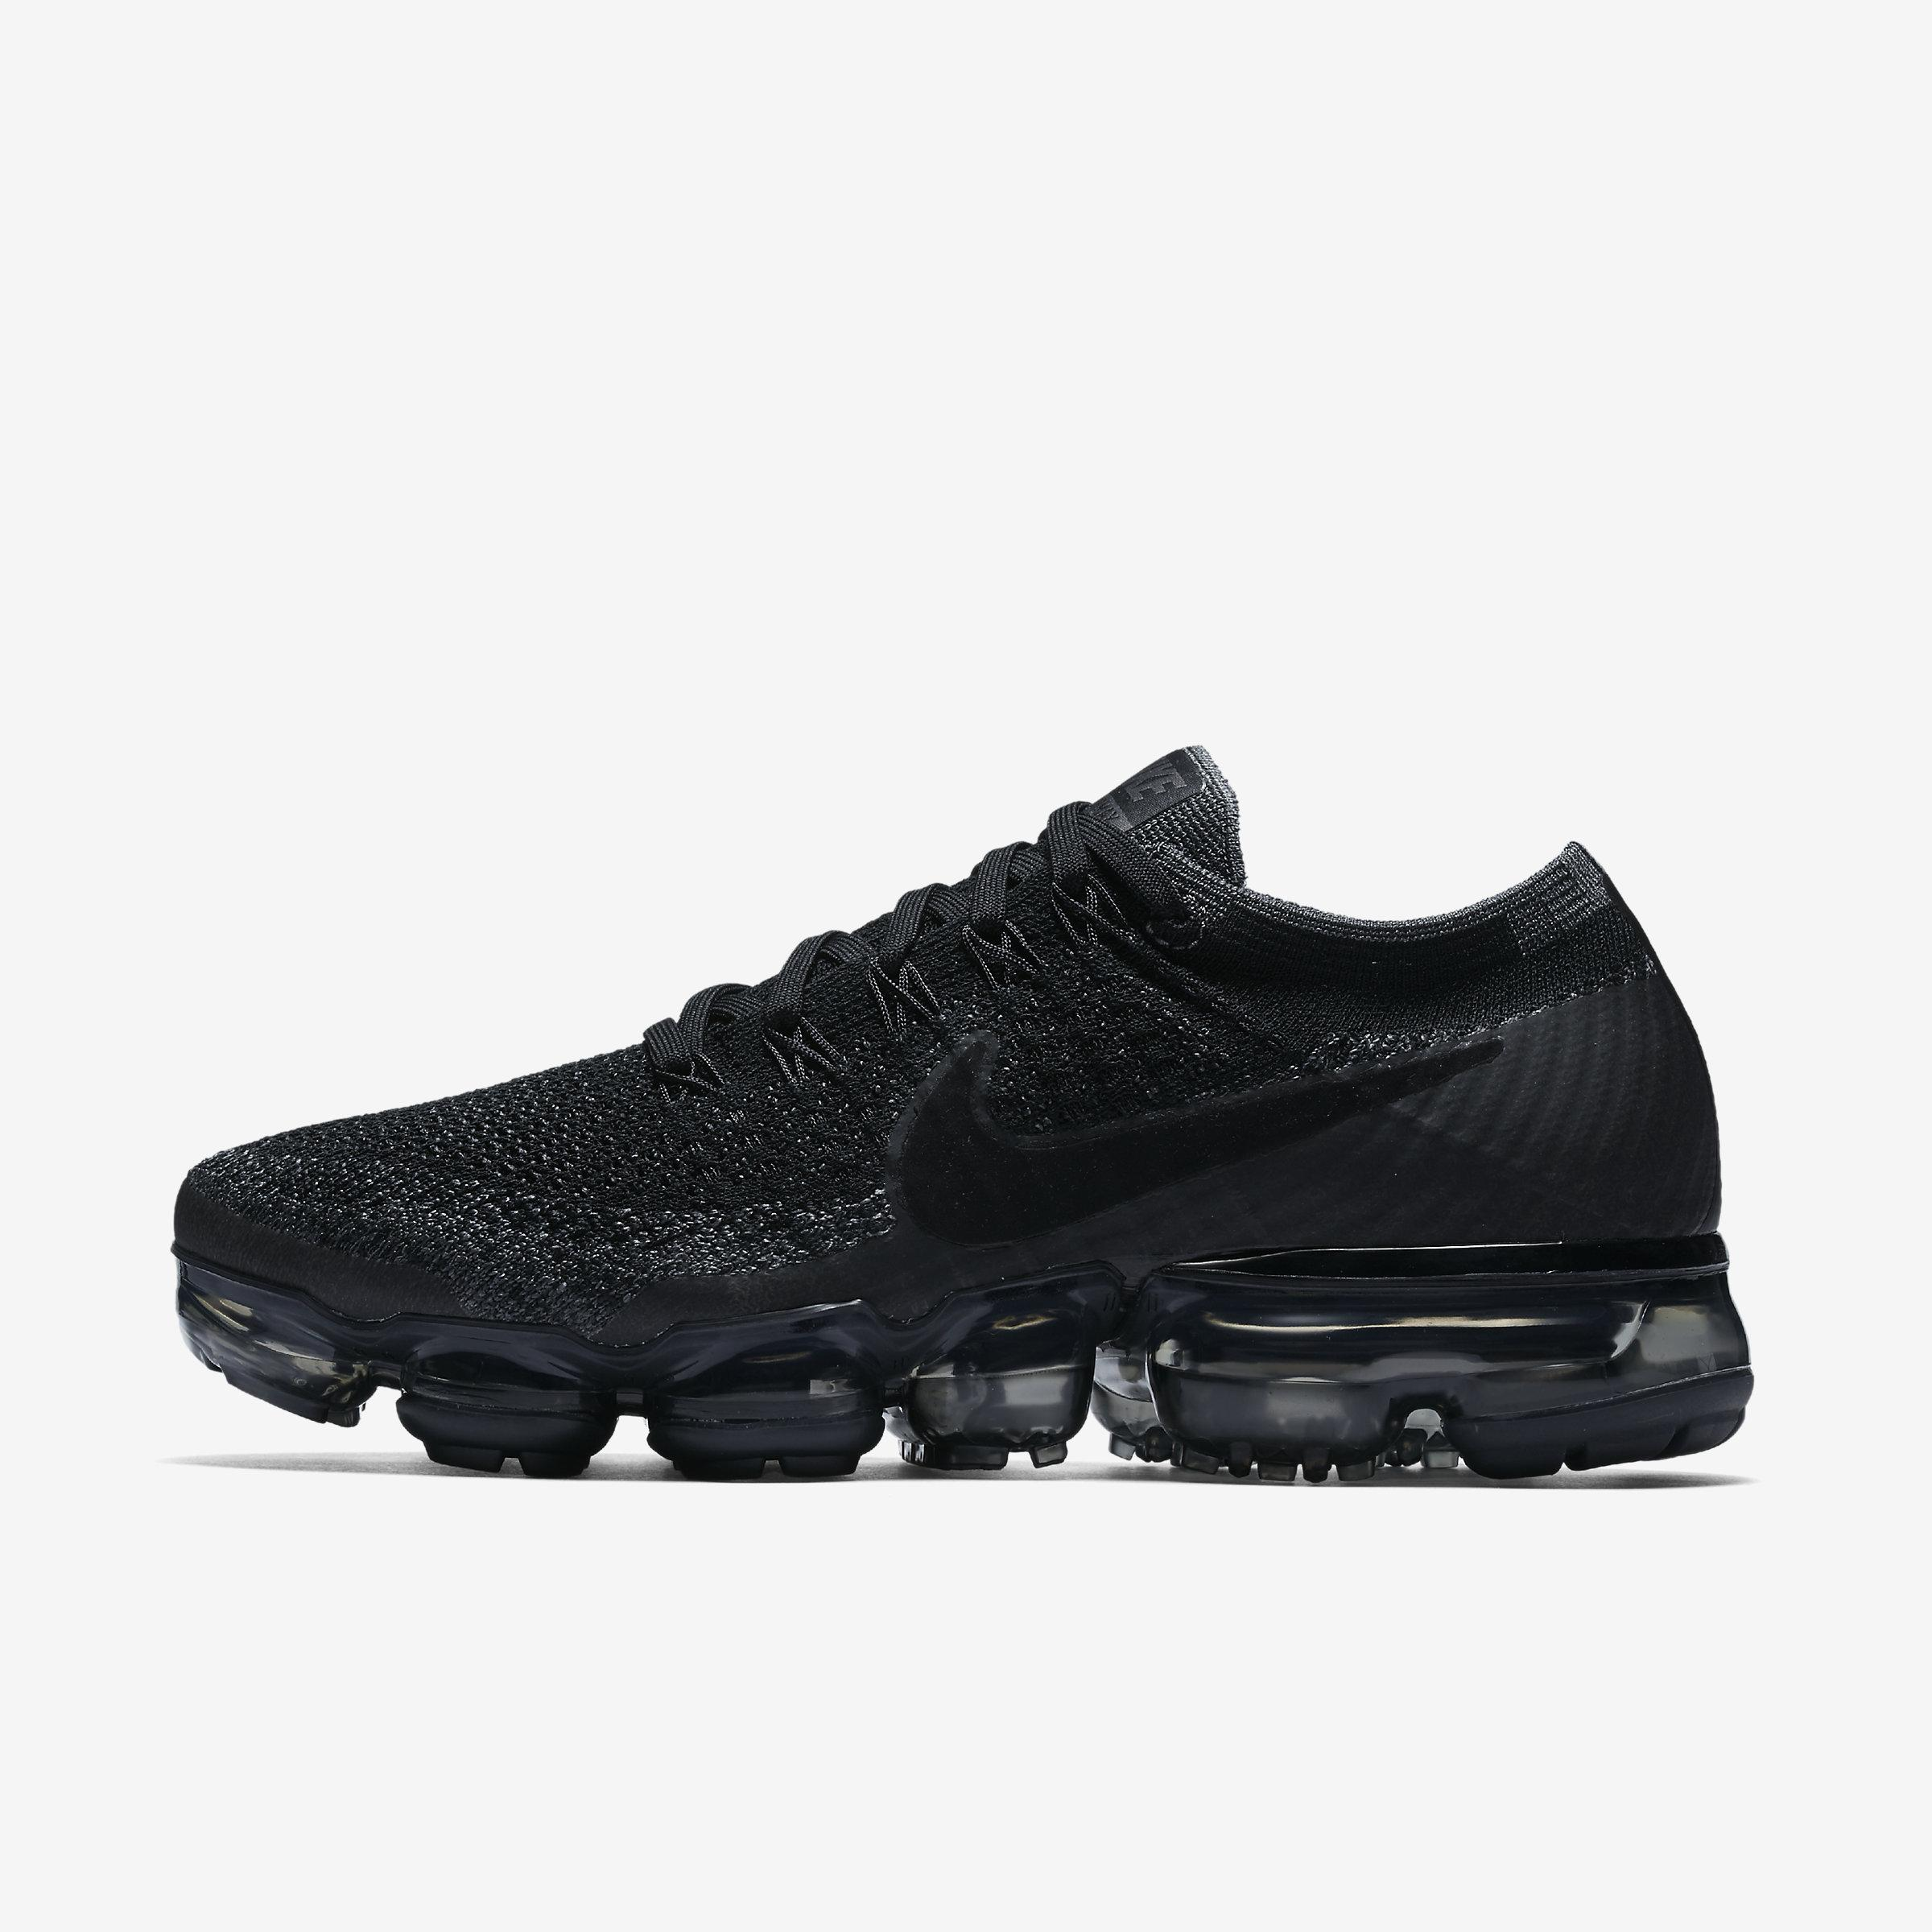 2bffb45eb429 Nike - Multicolor Air Vapormax Flyknit for Men - Lyst